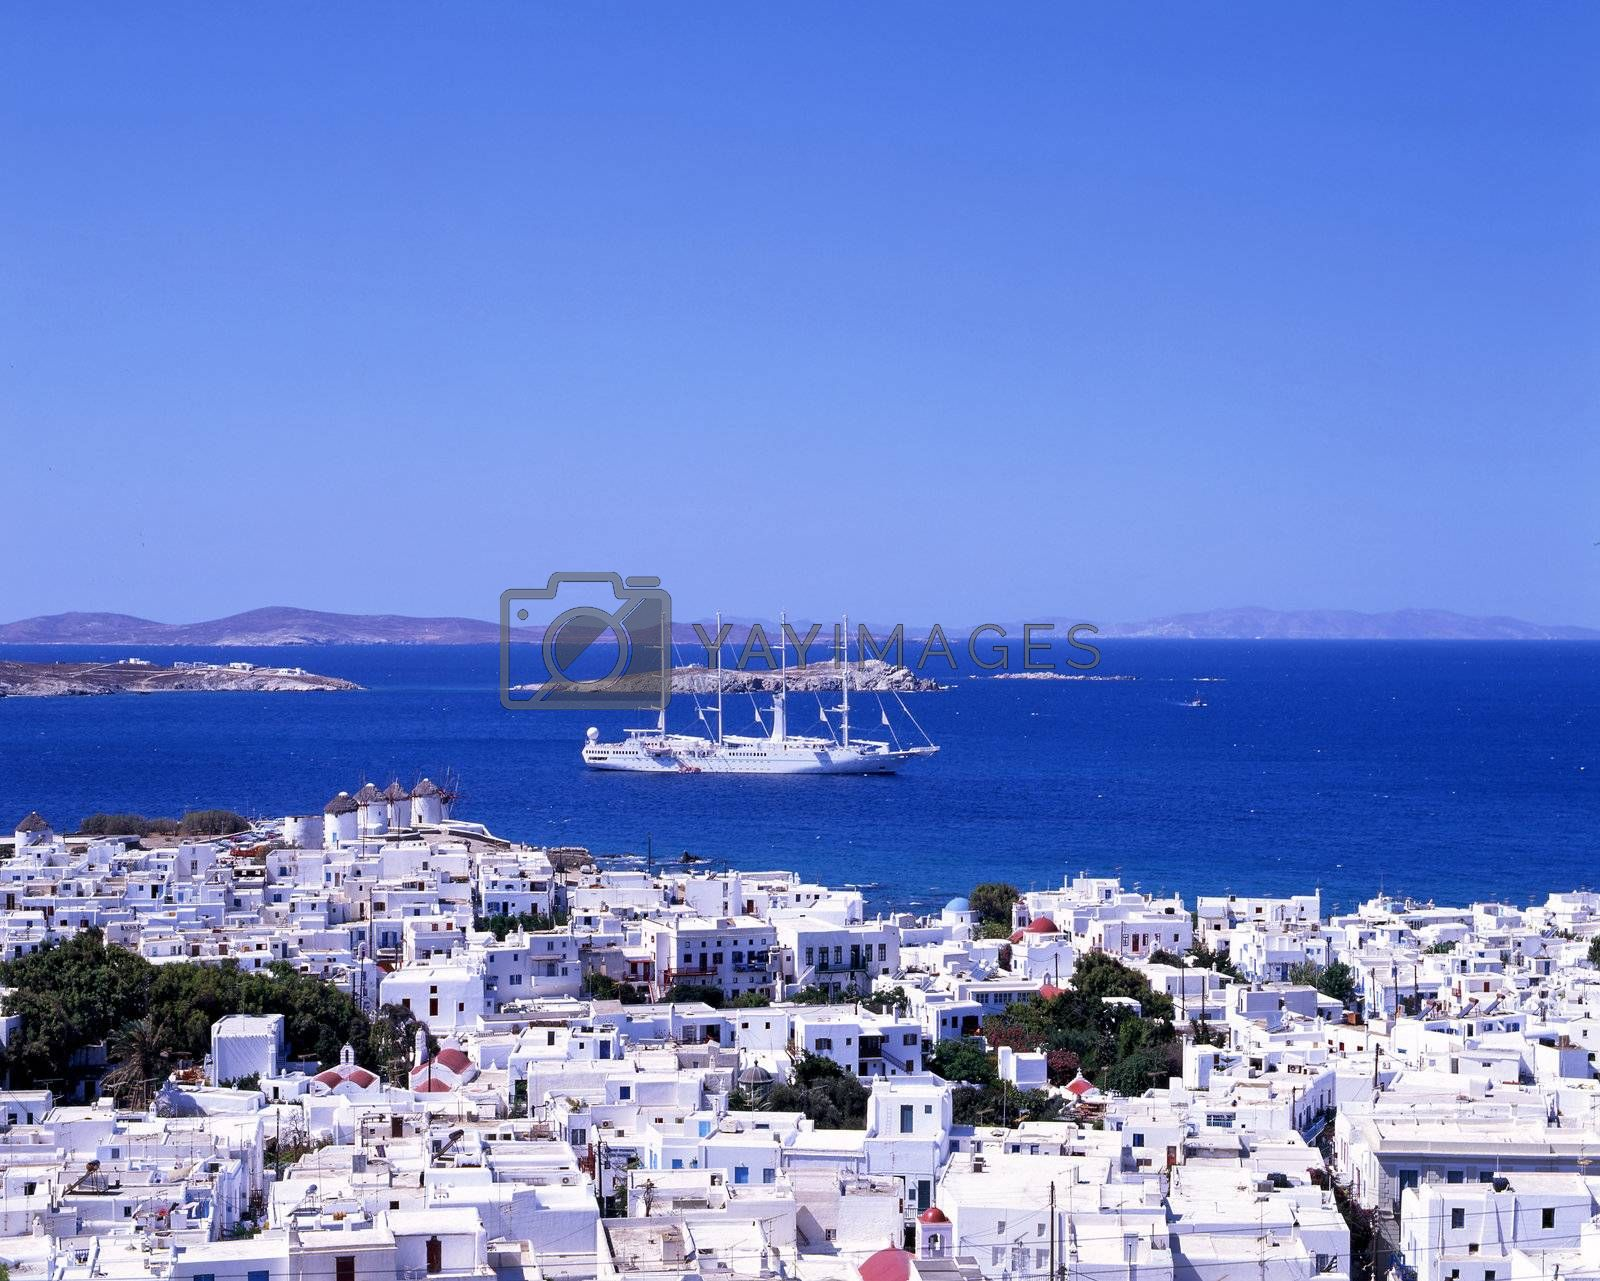 A large white sailing boat going into the port of Mykonos, a Greek island